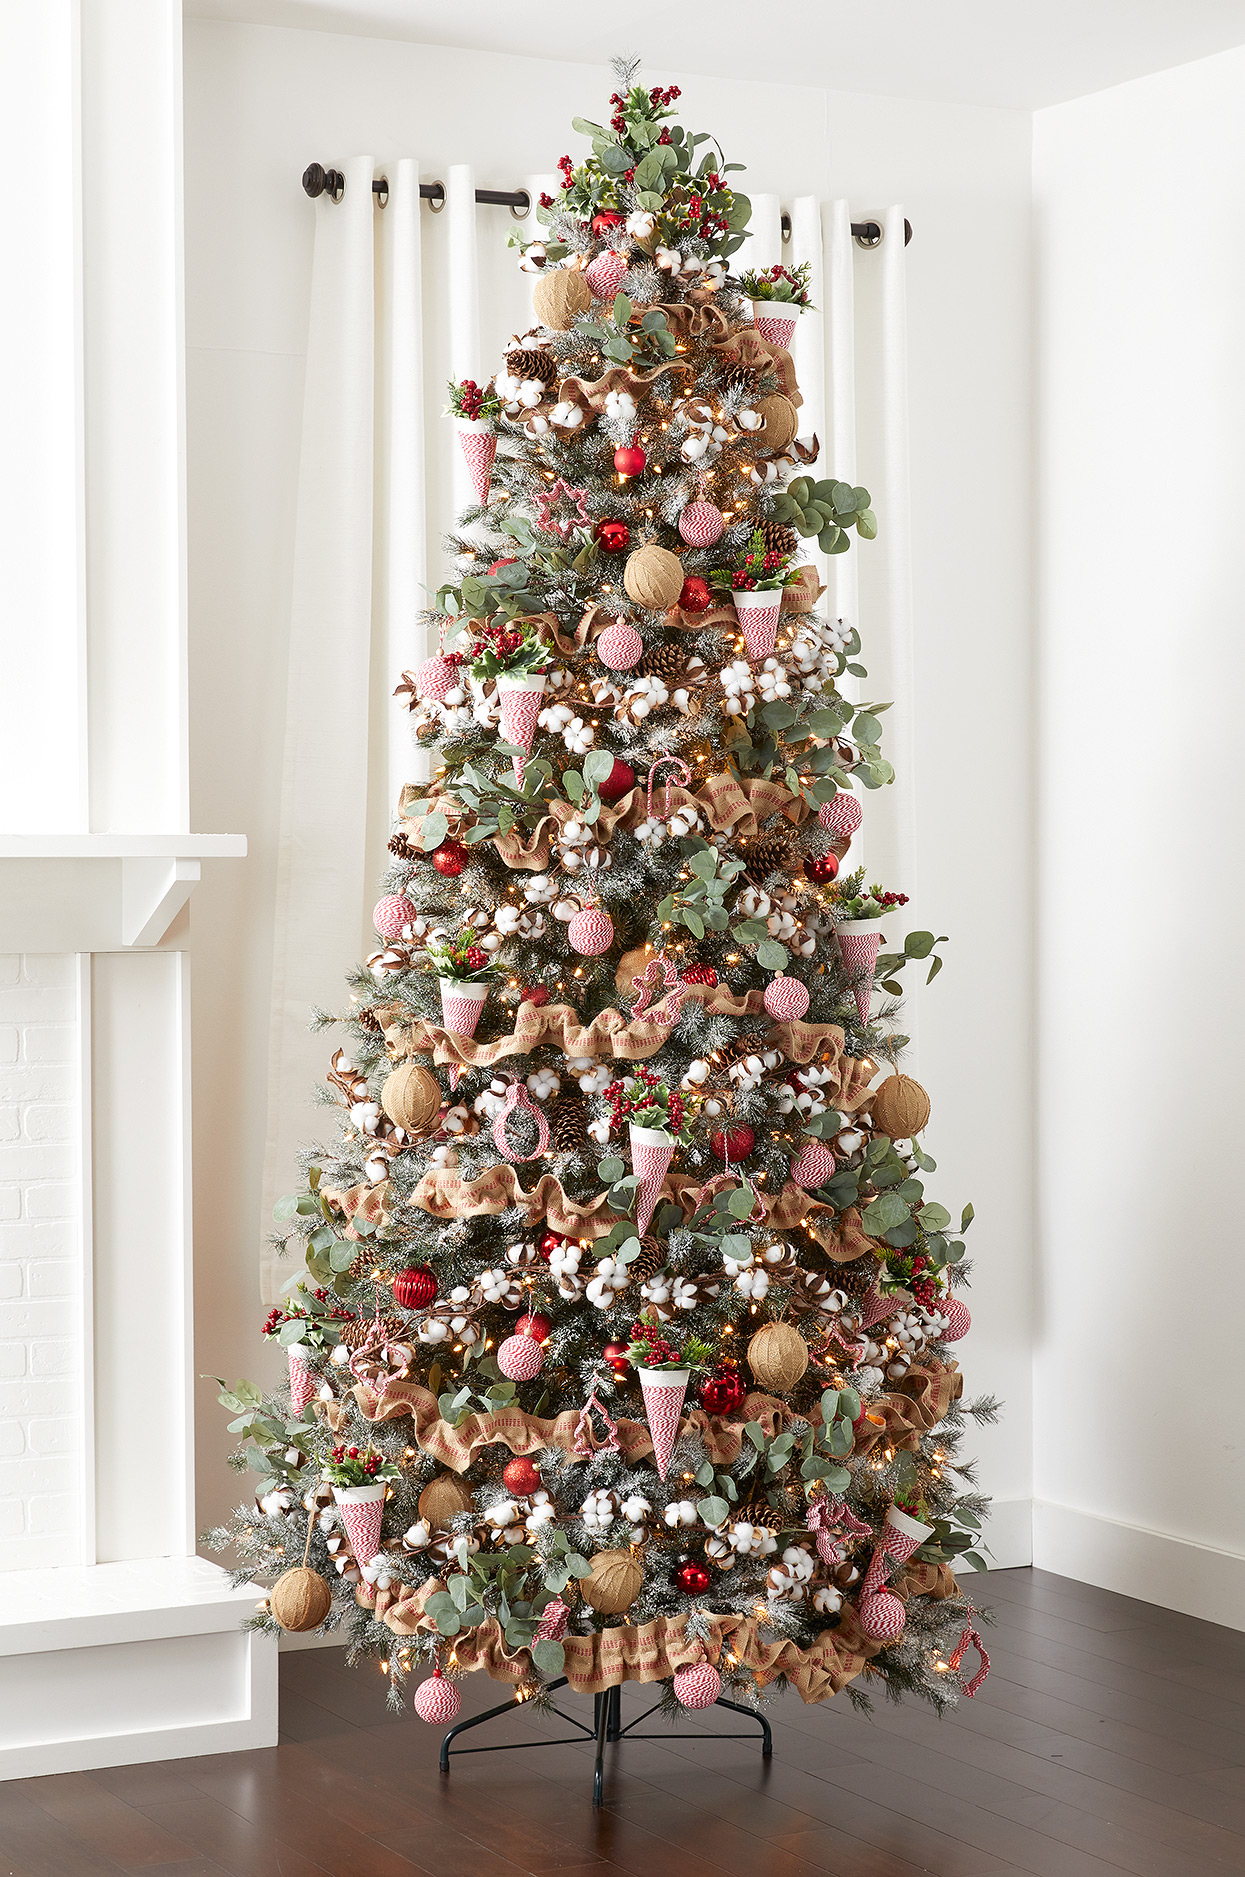 Christmas tree with cotton, burlap, twine ornaments and floral picks